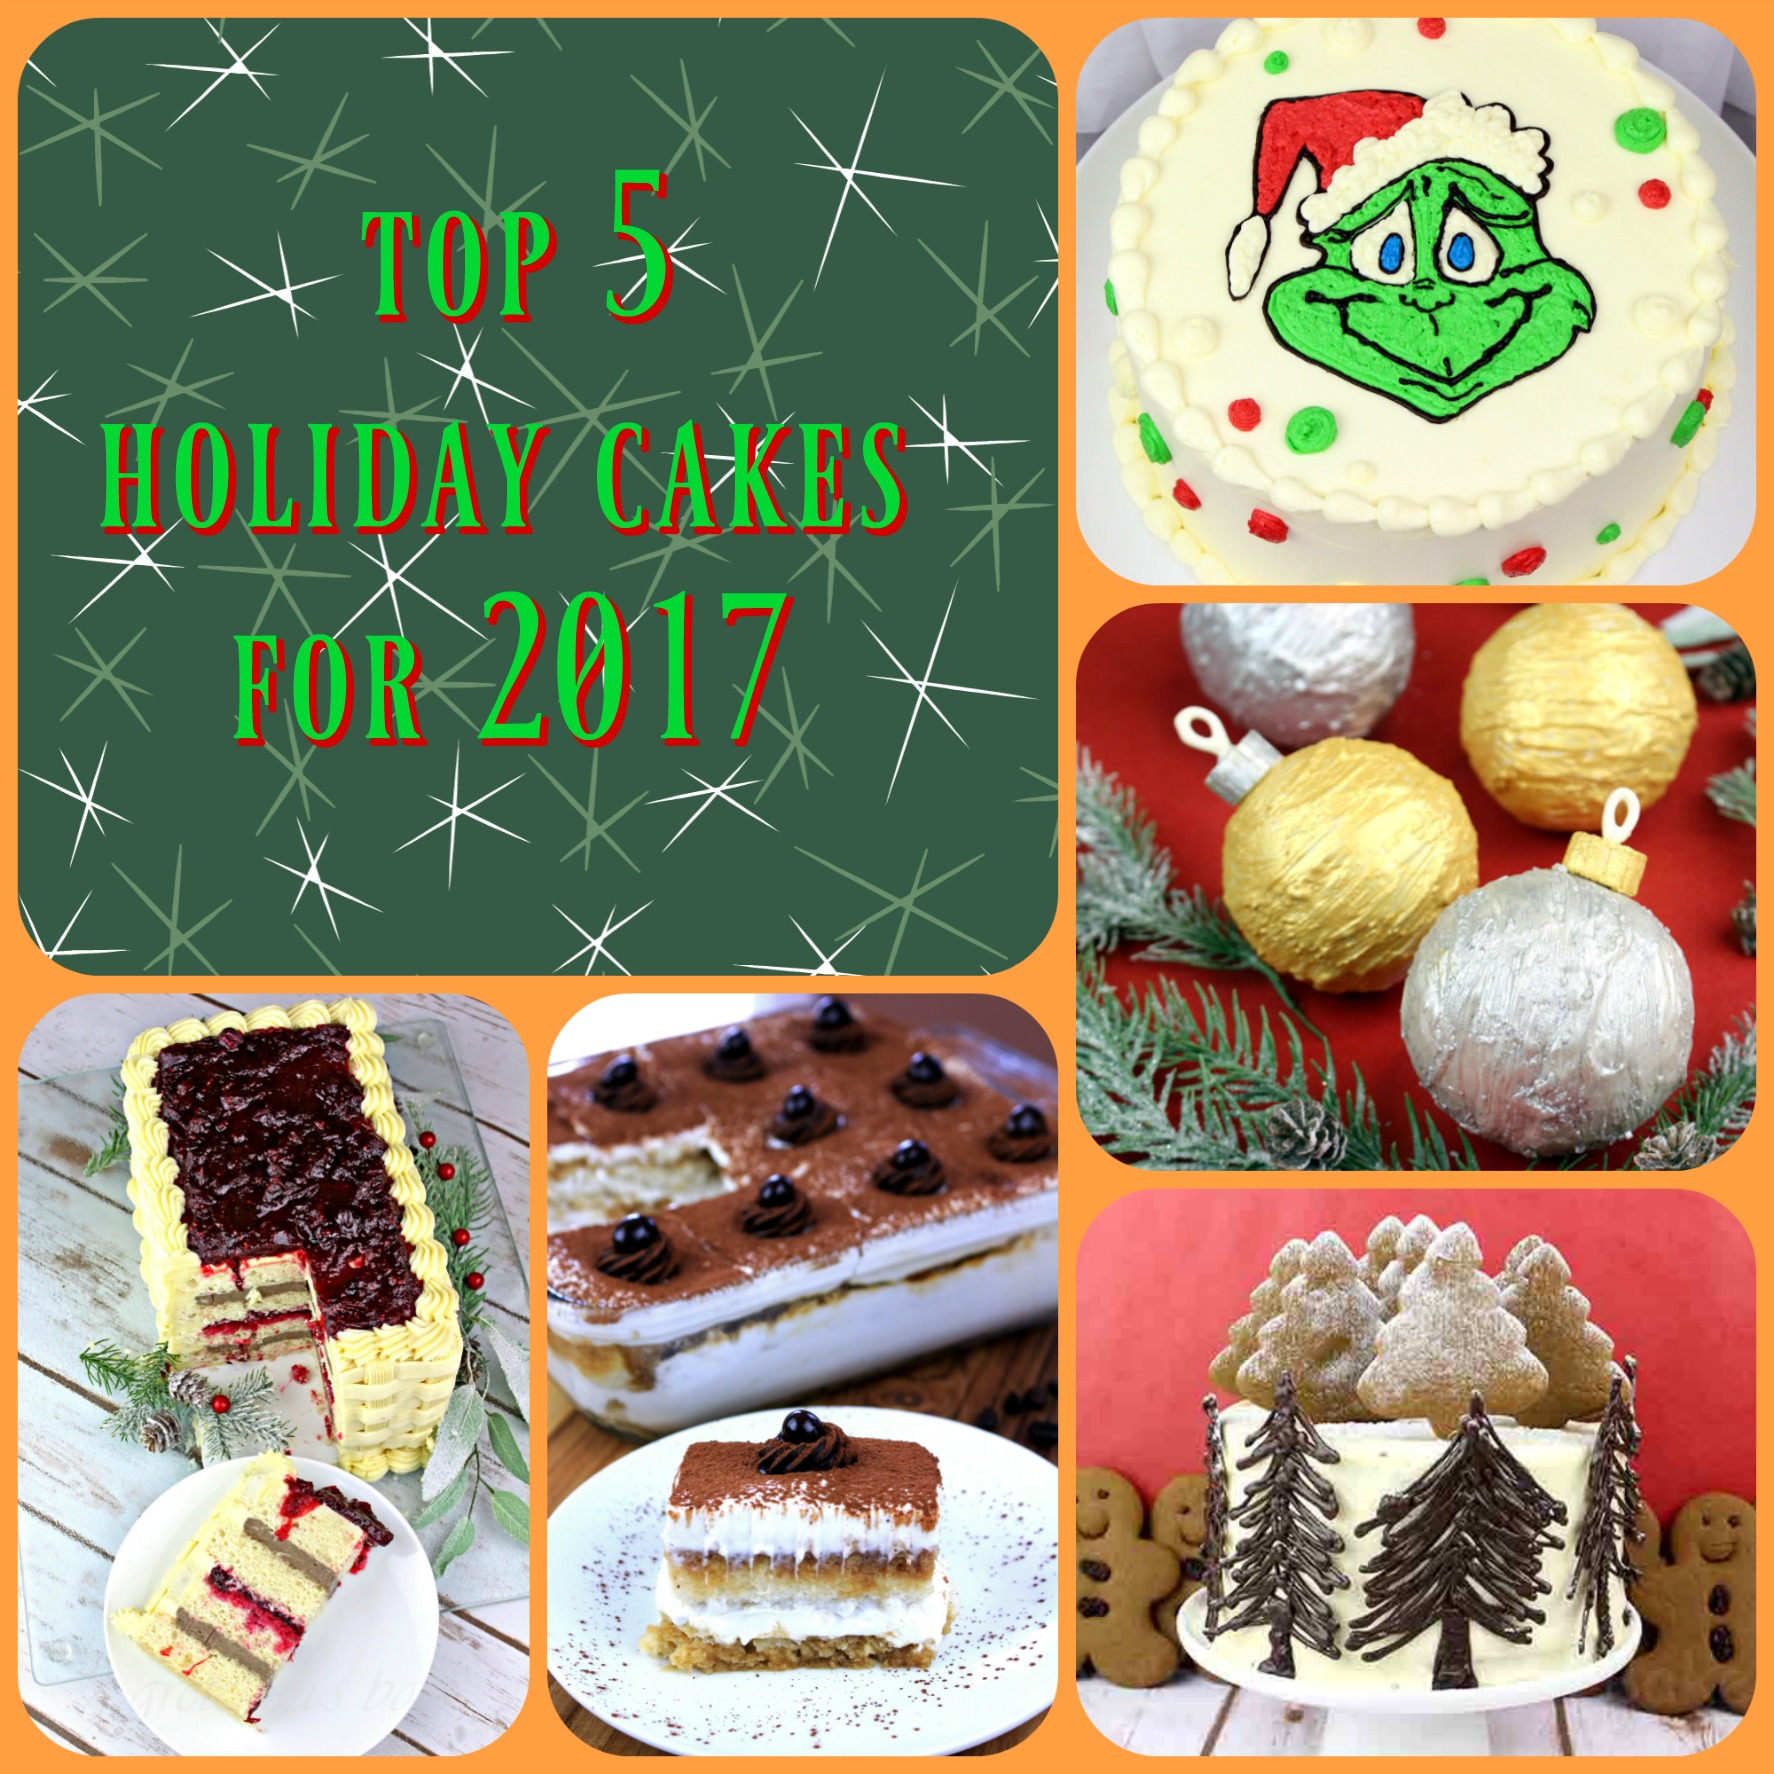 Top 5 Holiday Cakes you Must Make this Season!